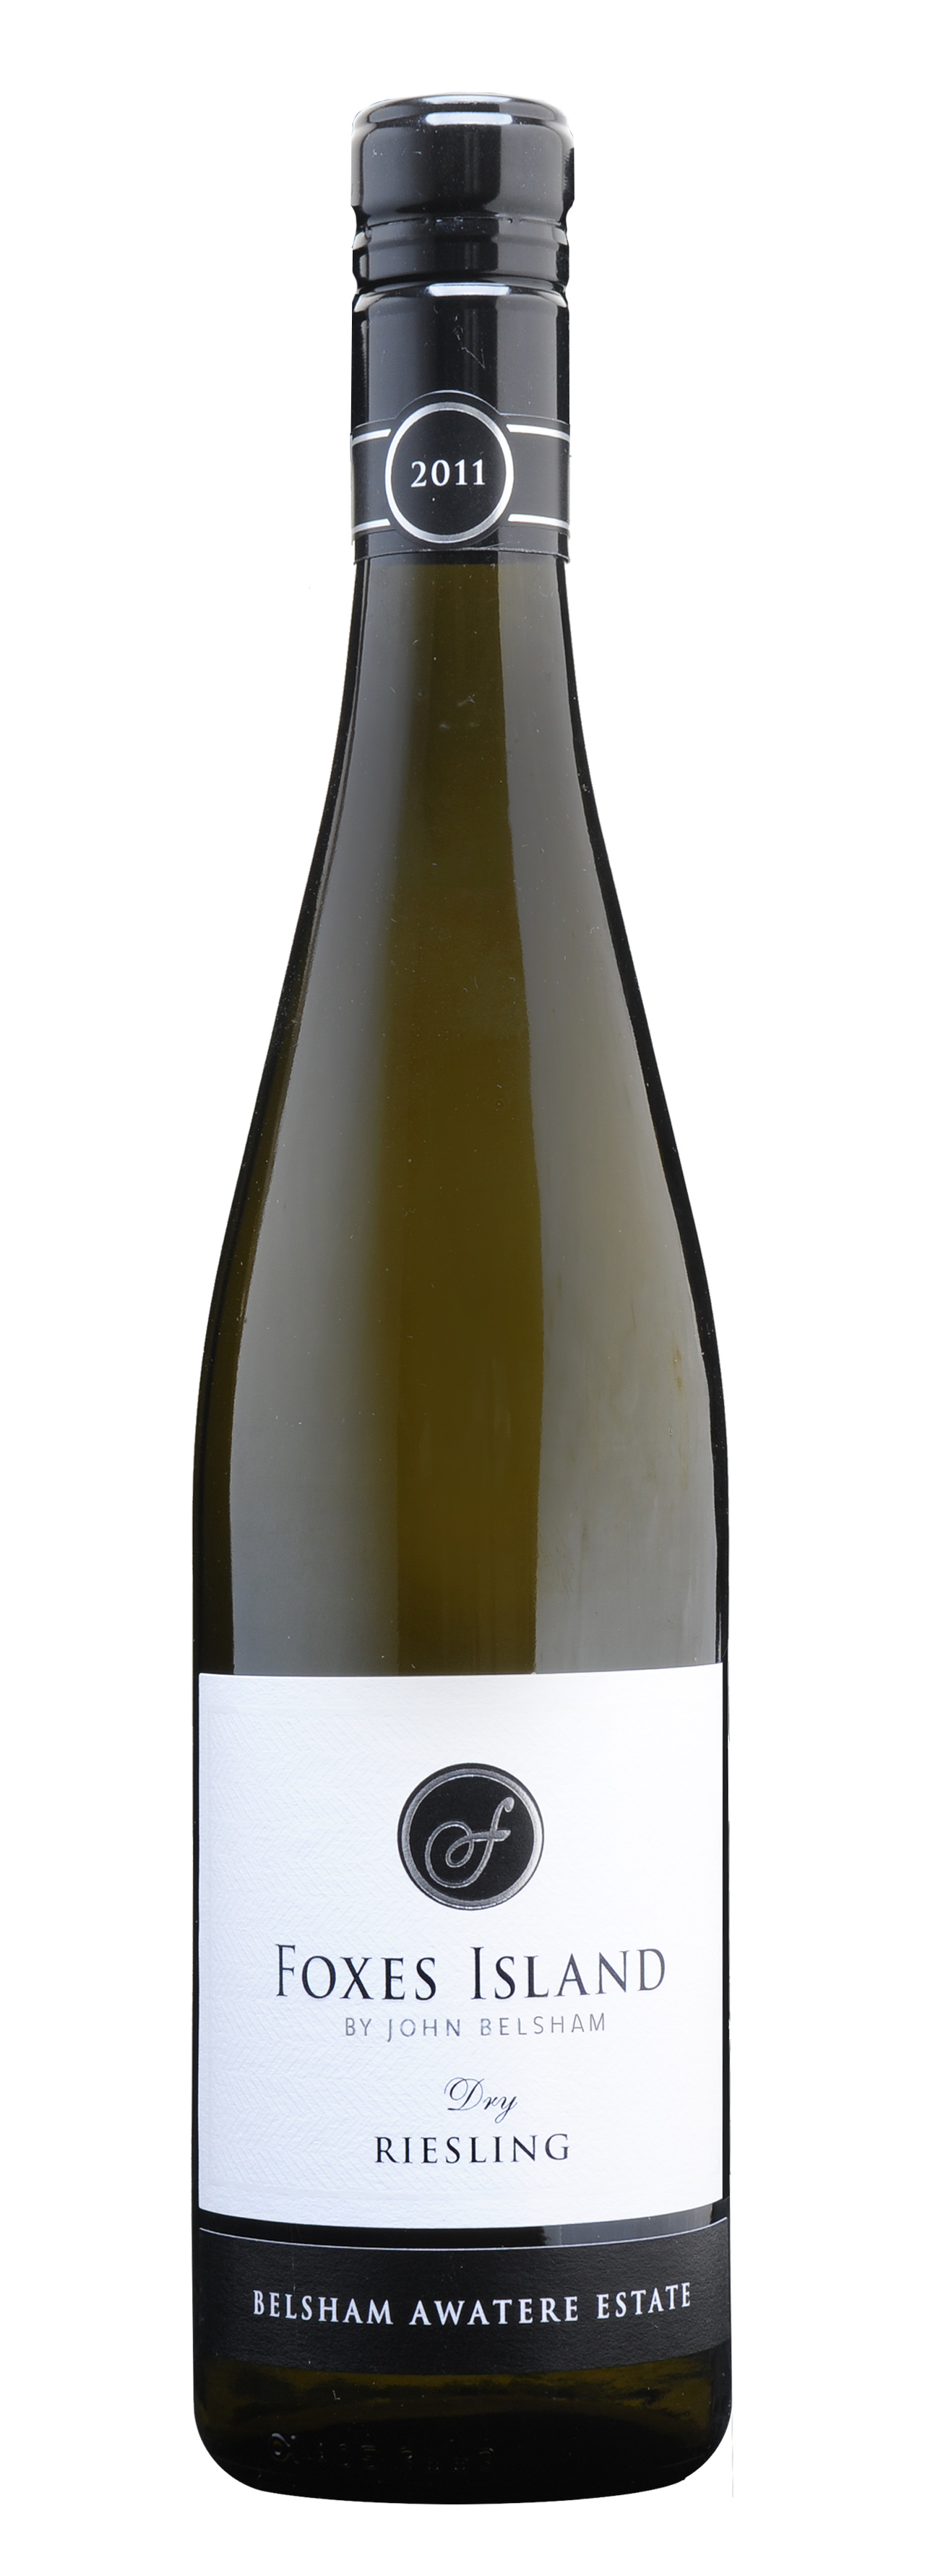 Foxes Island Dry Riesling 2011